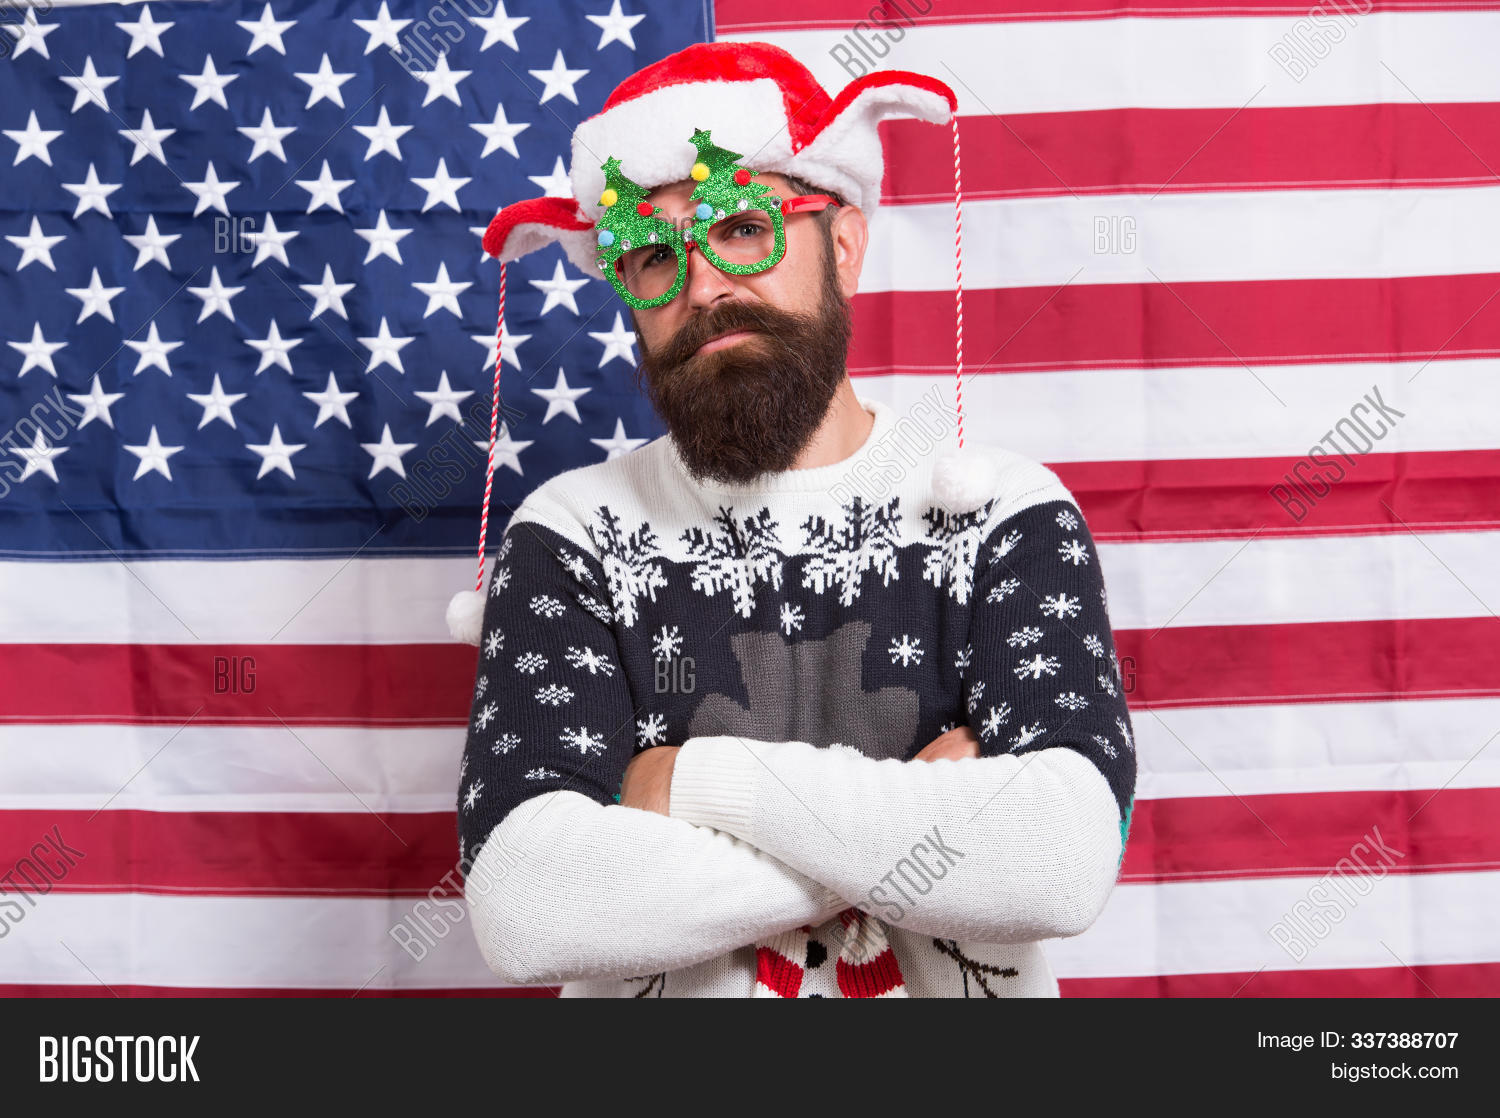 2020,all,america,american,background,banner,beard,bearded,celebrate,celebration,christmas,claus,confident,country,december,democracy,flag,freedom,from,hipster,holiday,justice,liberty,man,my,nation,national,new,party,patriotic,patriotism,santa,snowman,states,tradition,traditional,united,usa,winter,xmas,year